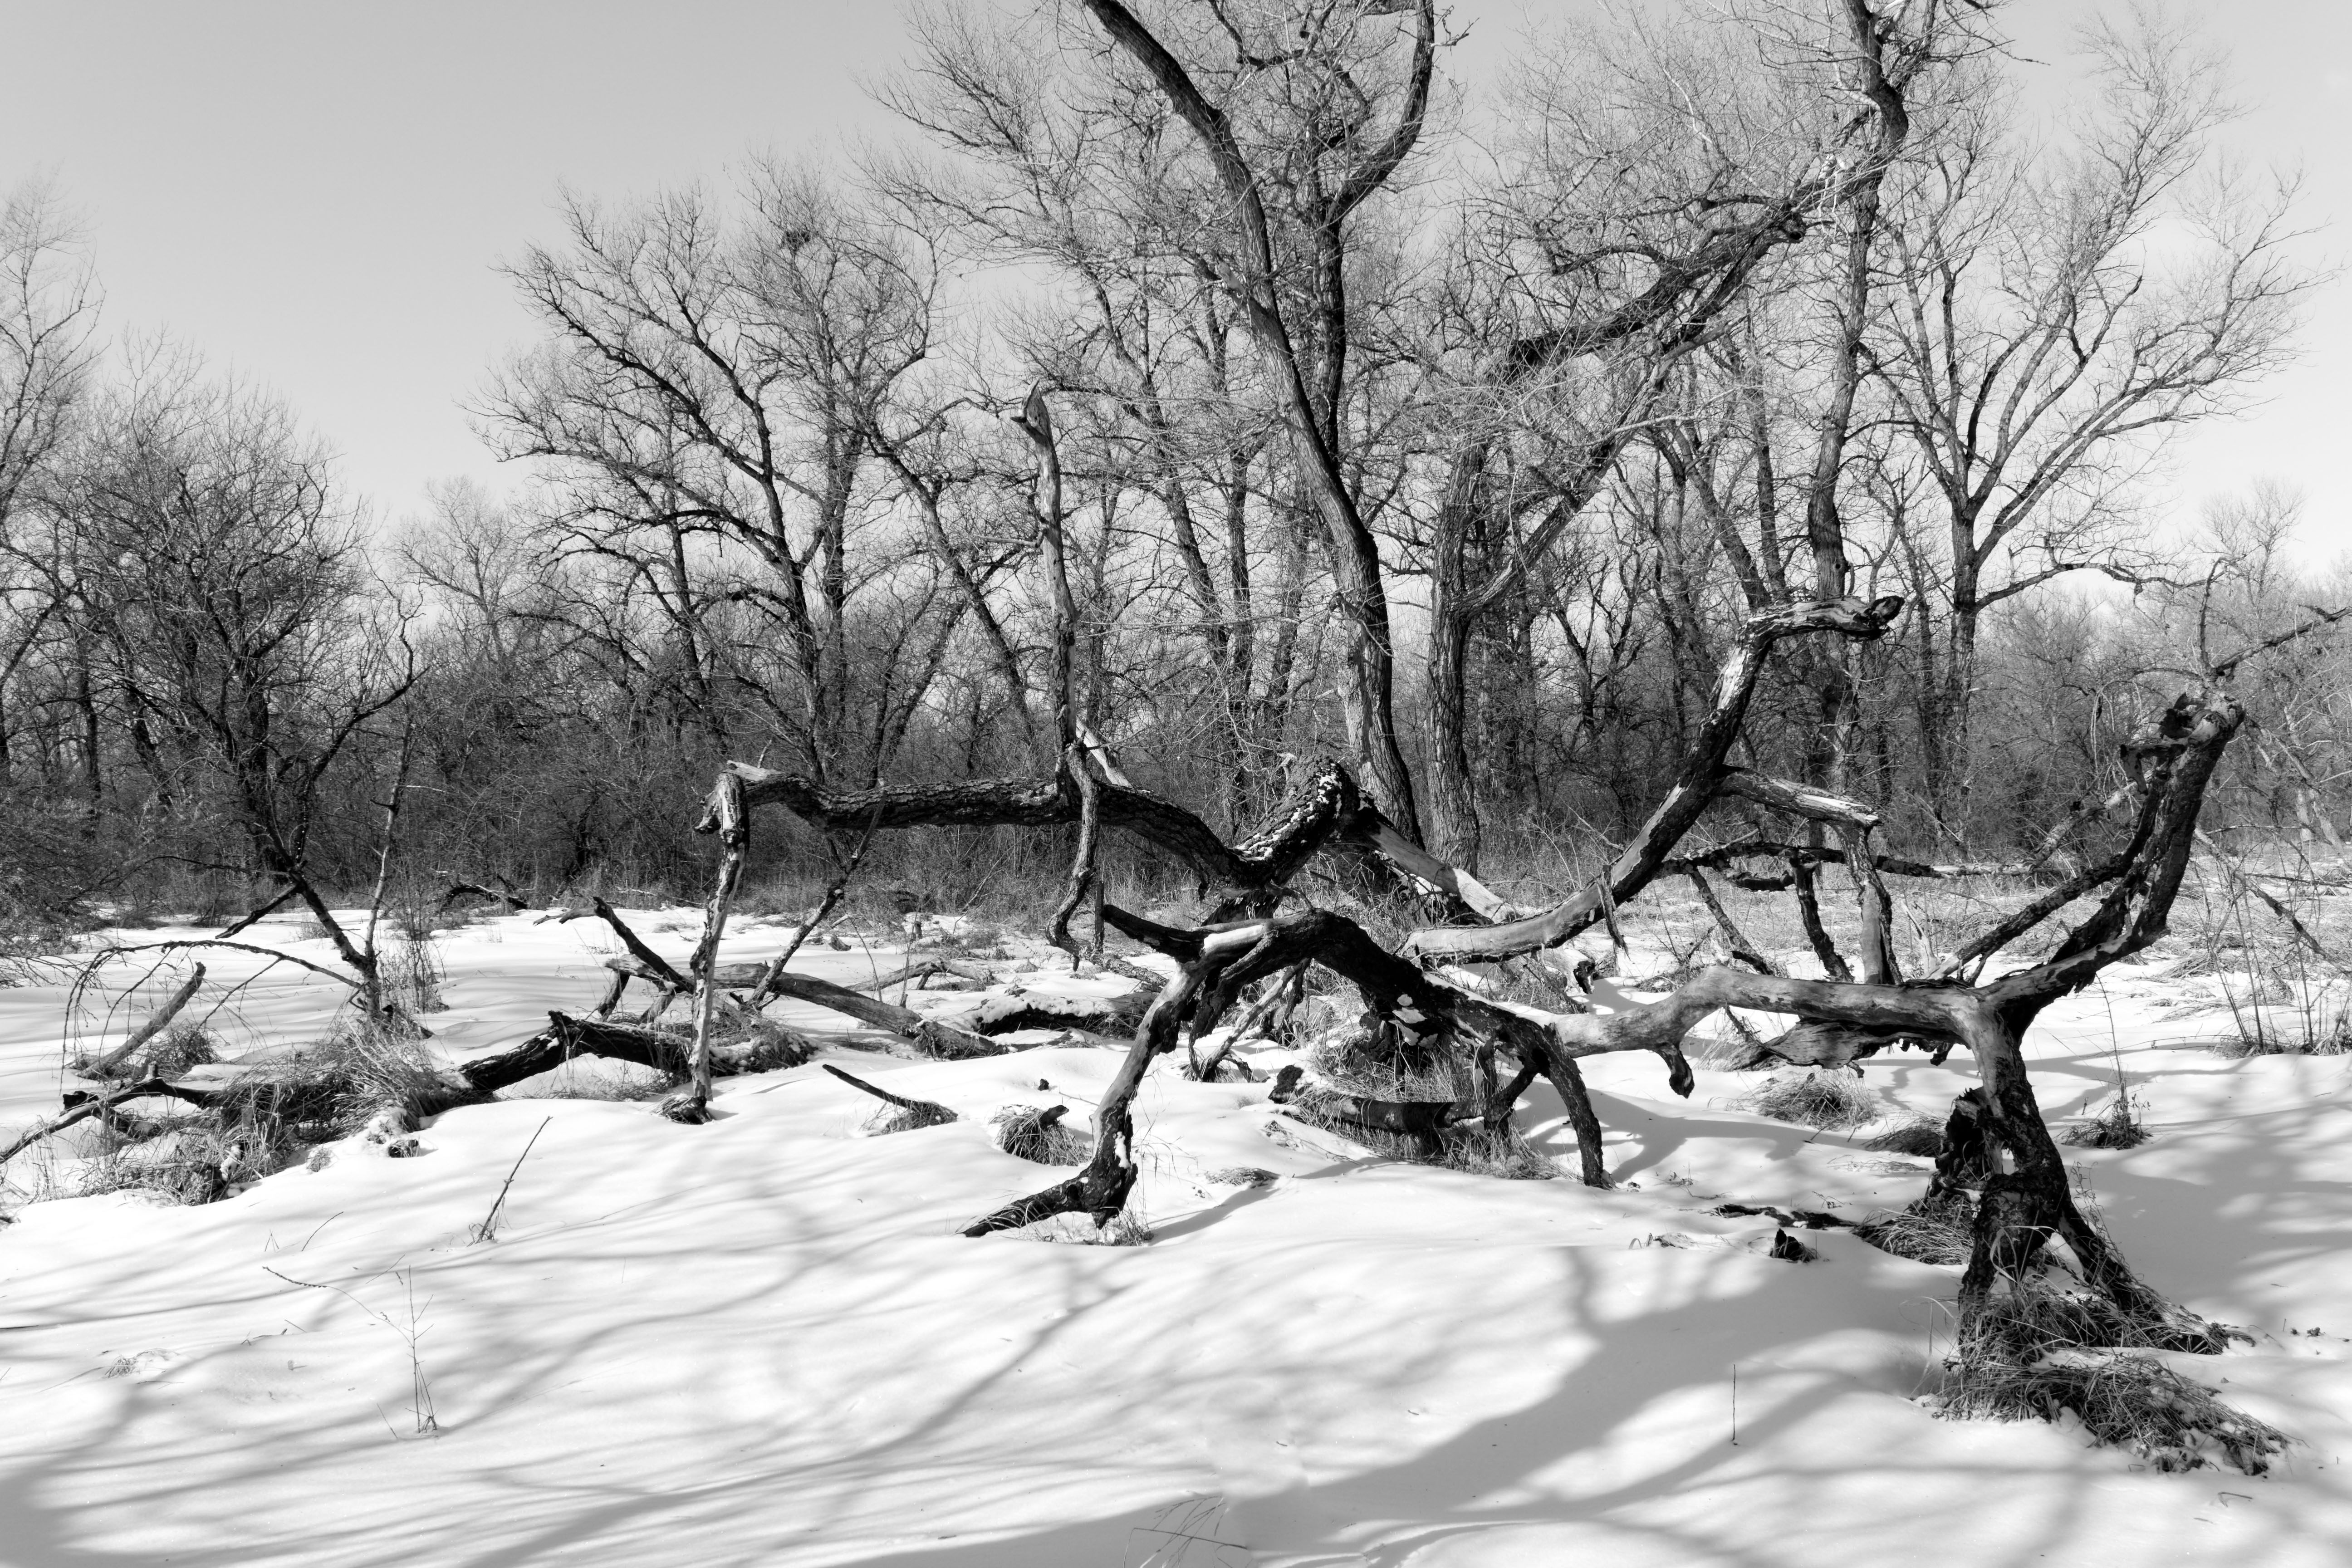 Winter forest after a storm